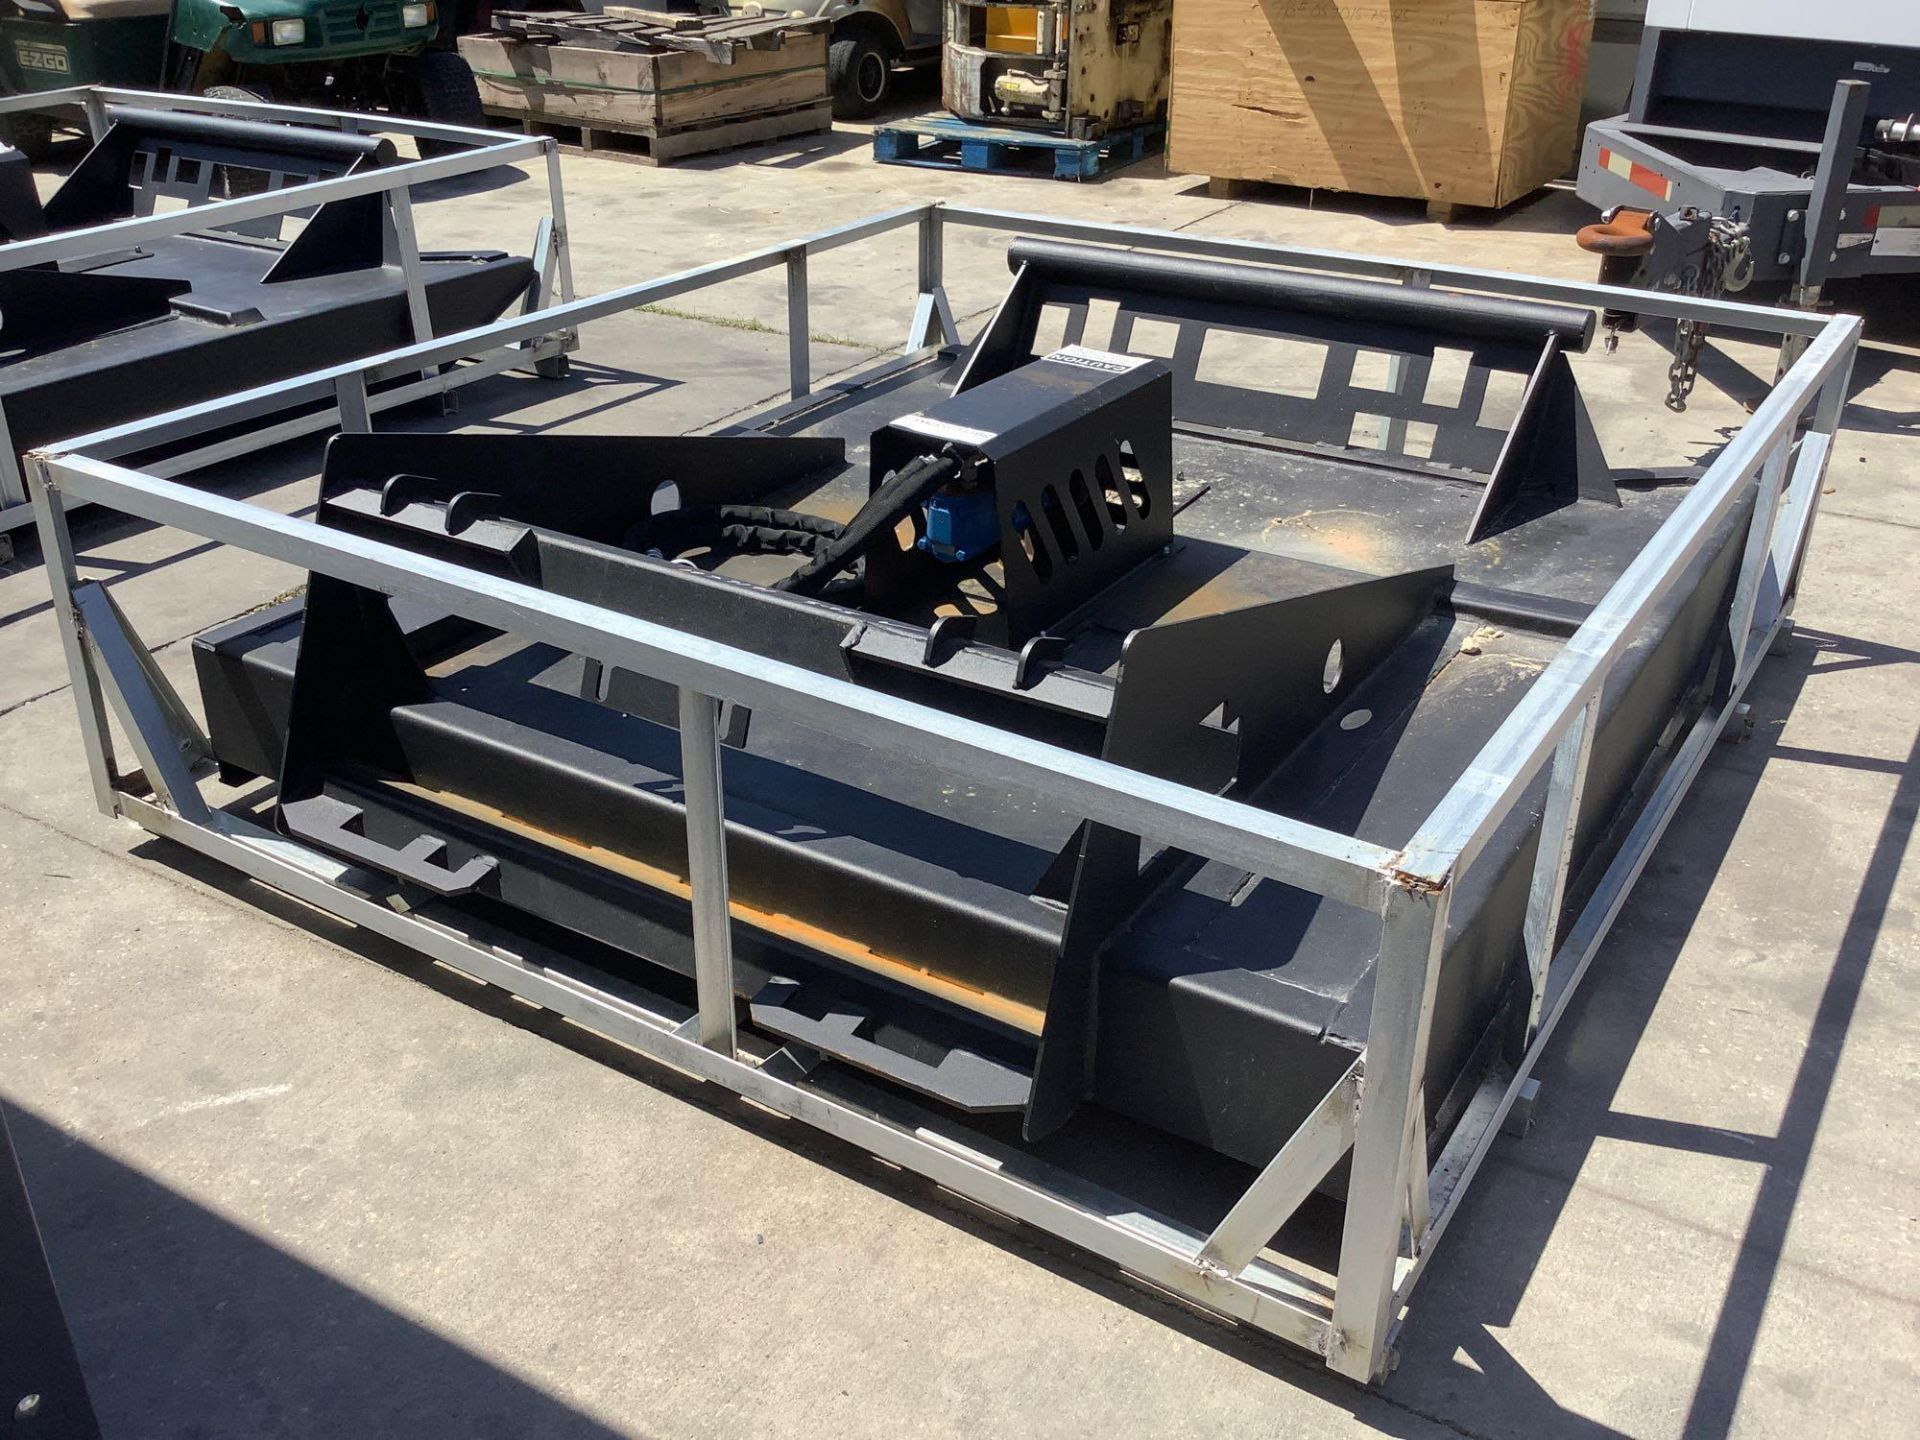 UNUSED BRUSH CUTTER ATTACHMENT FOR SKID STEER APPROX 77IN LONG x 70IN WIDE